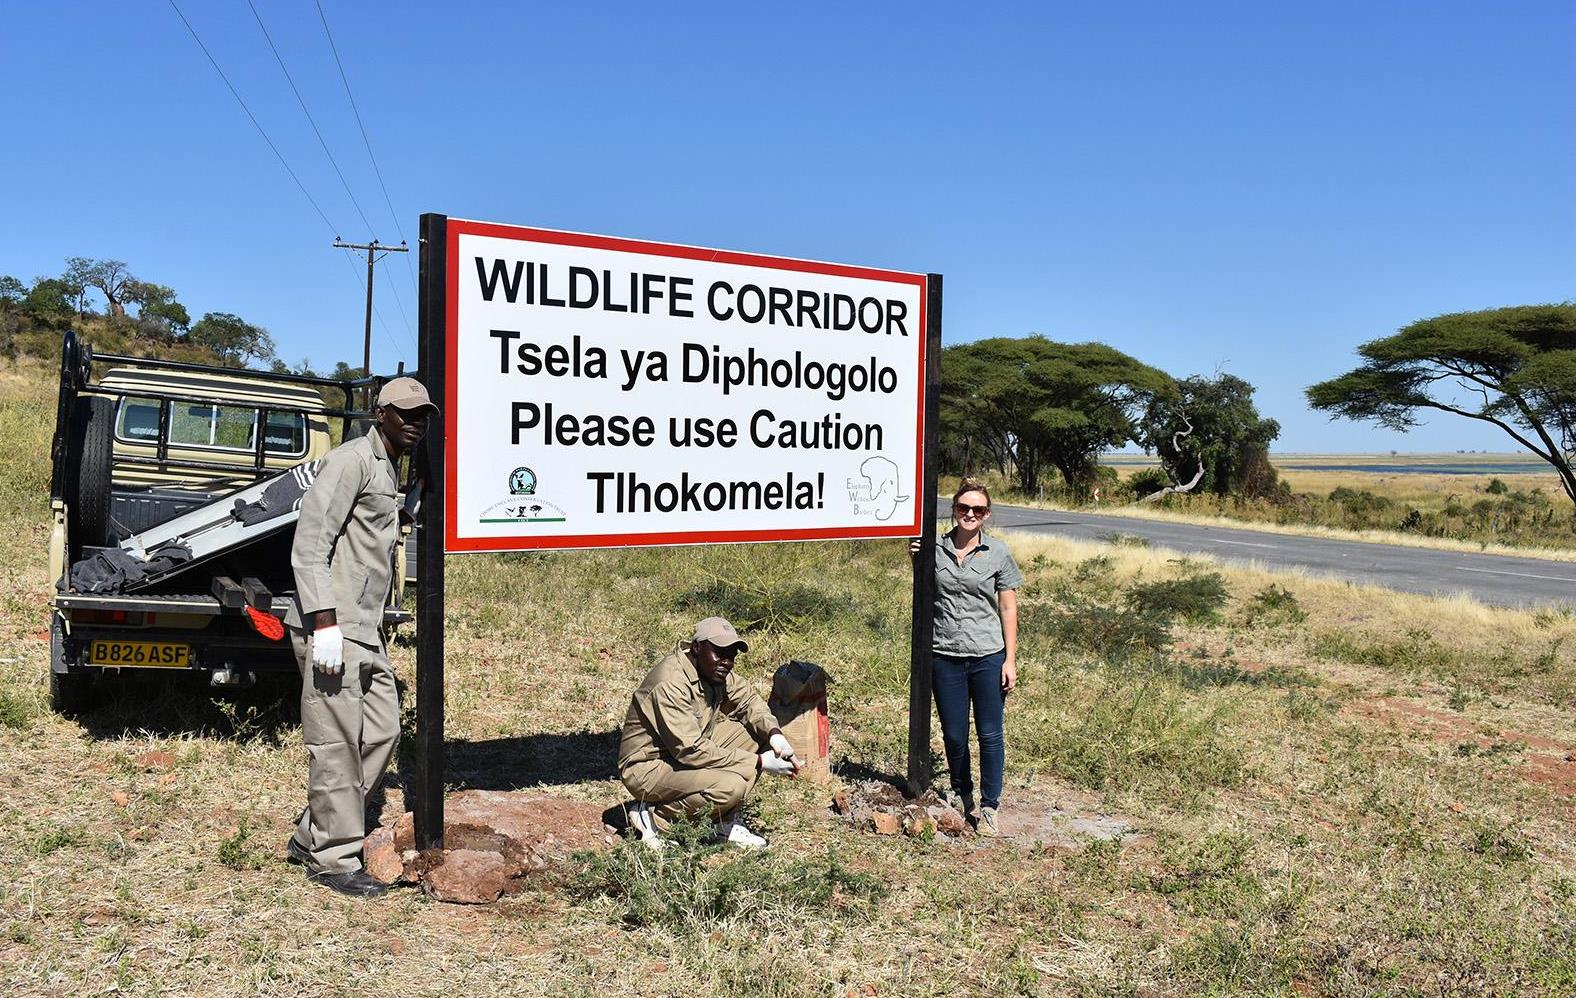 Elephants Without Borders staff installing a sign that cautions the public about a wildlife corridor in Kasane, Botswana.